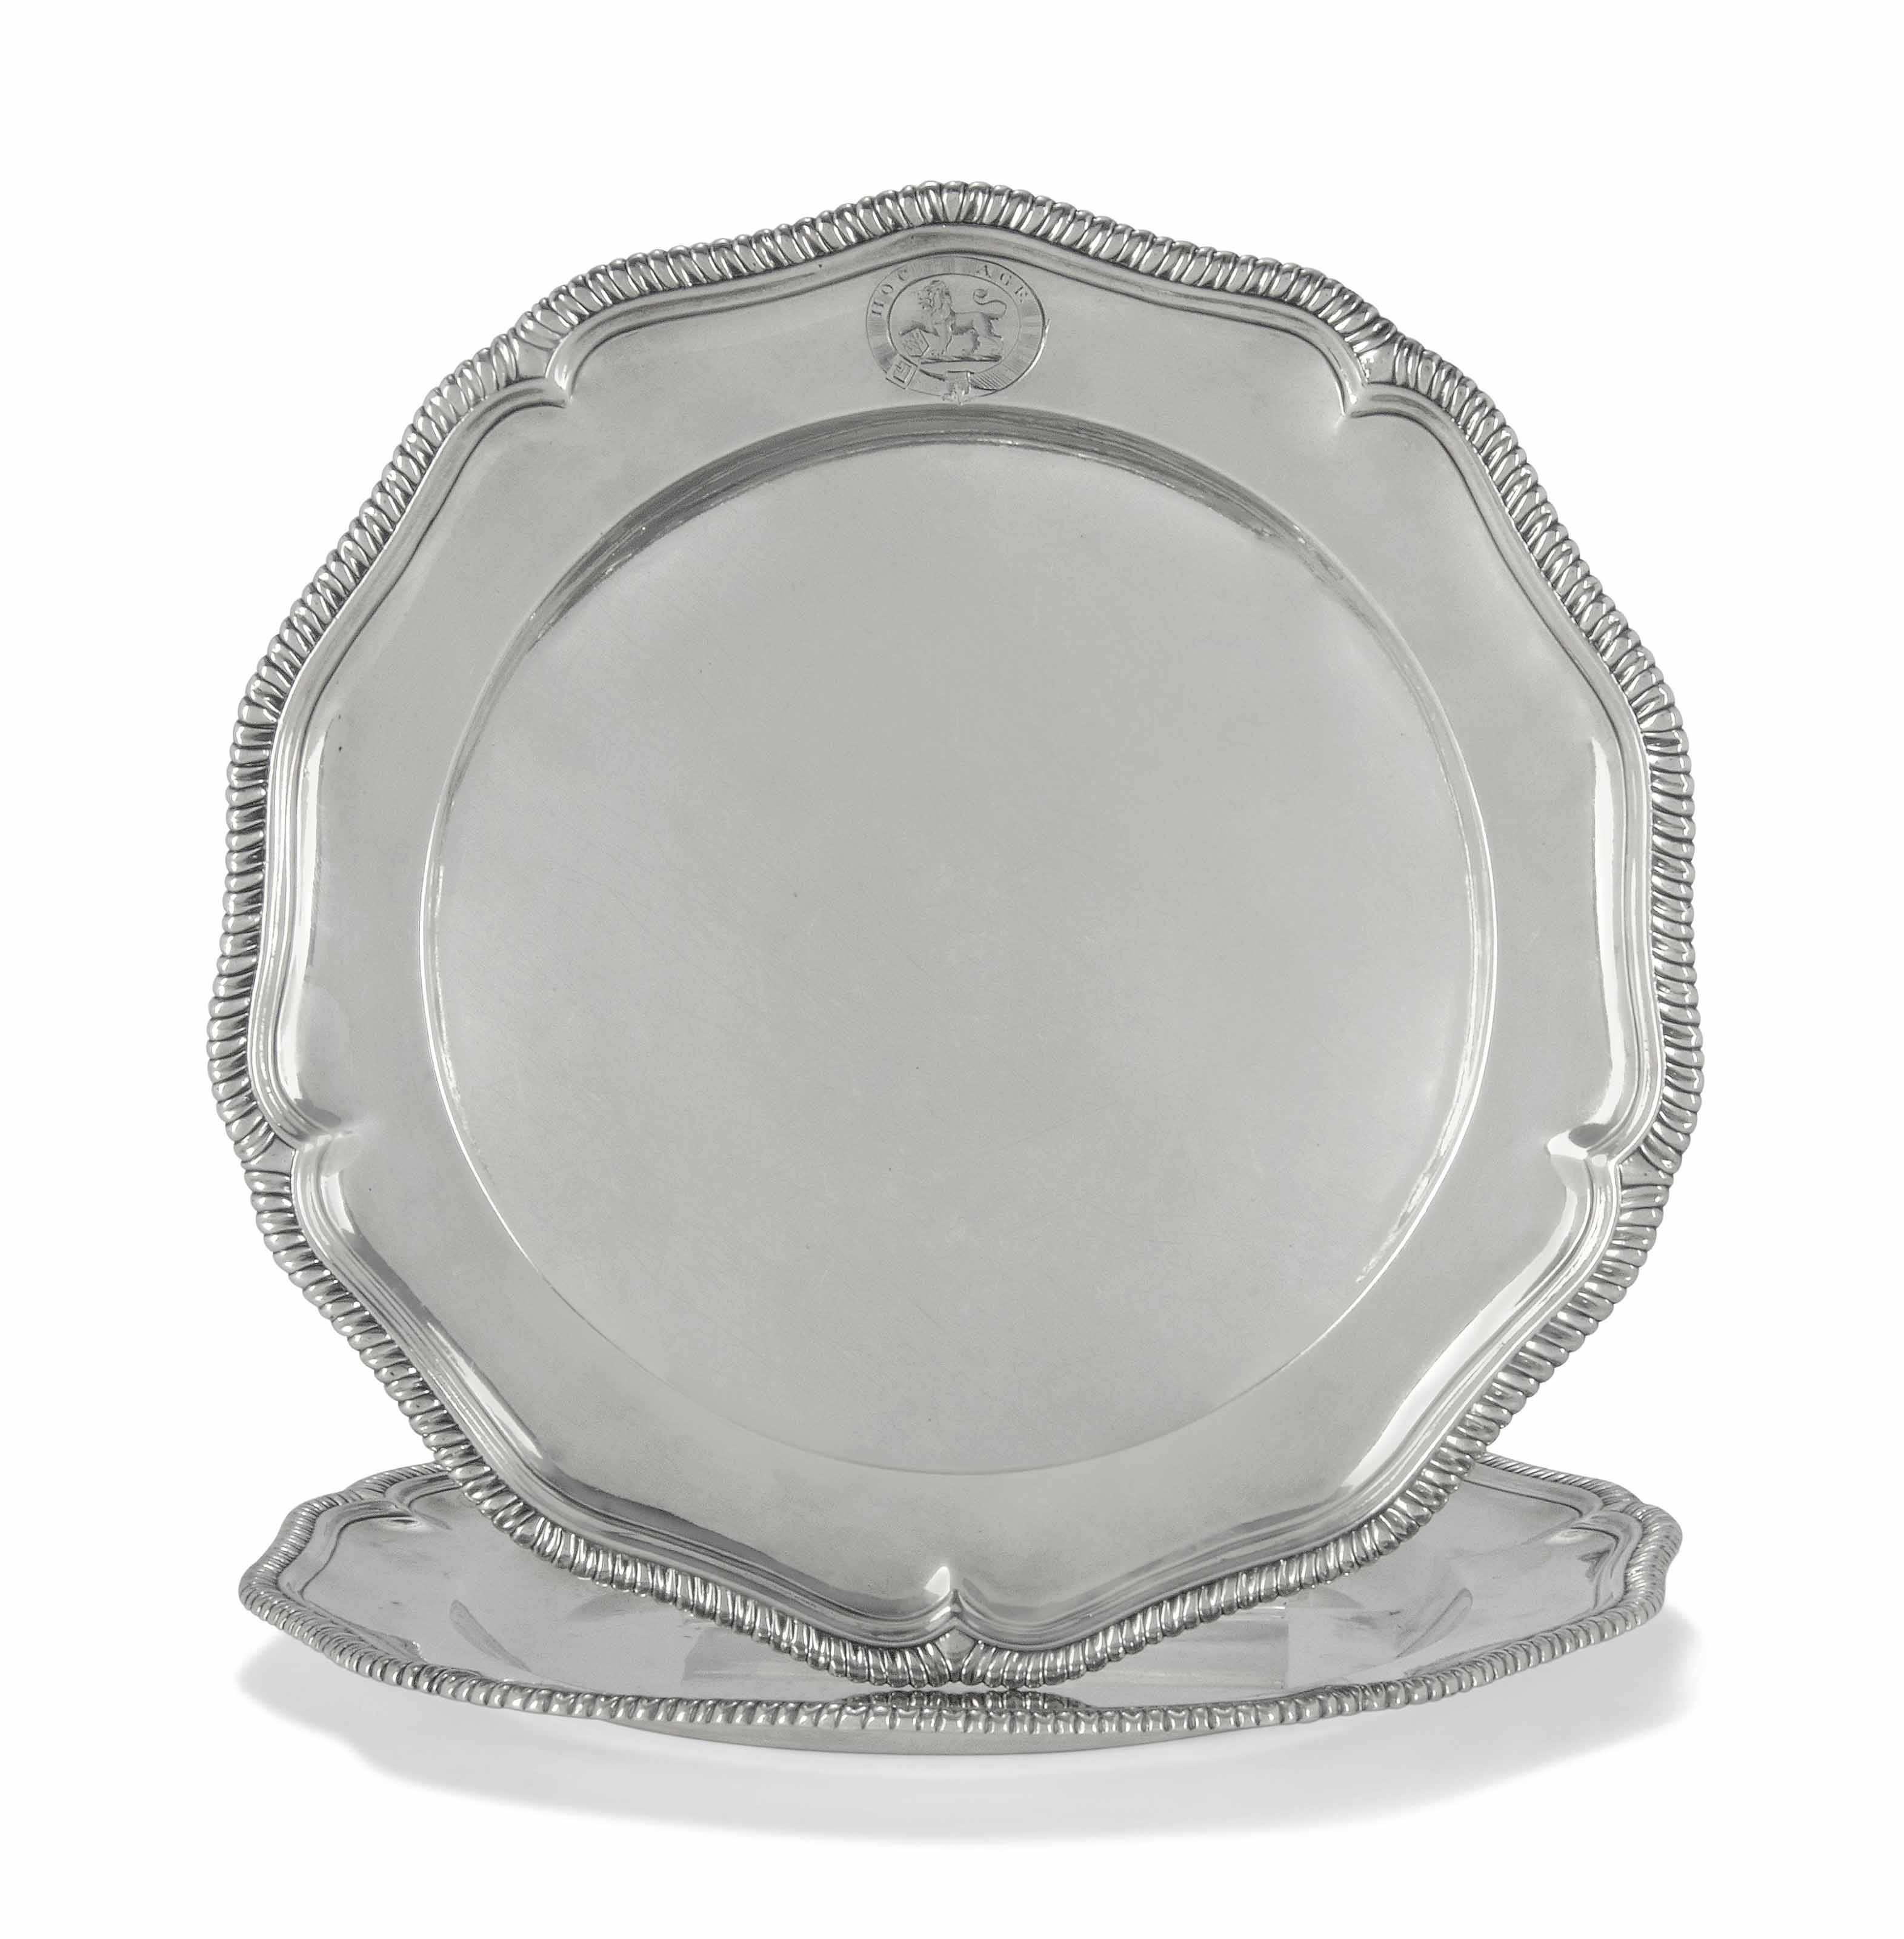 A PAIR OF GEORGE II SILVER DINNER PLATES